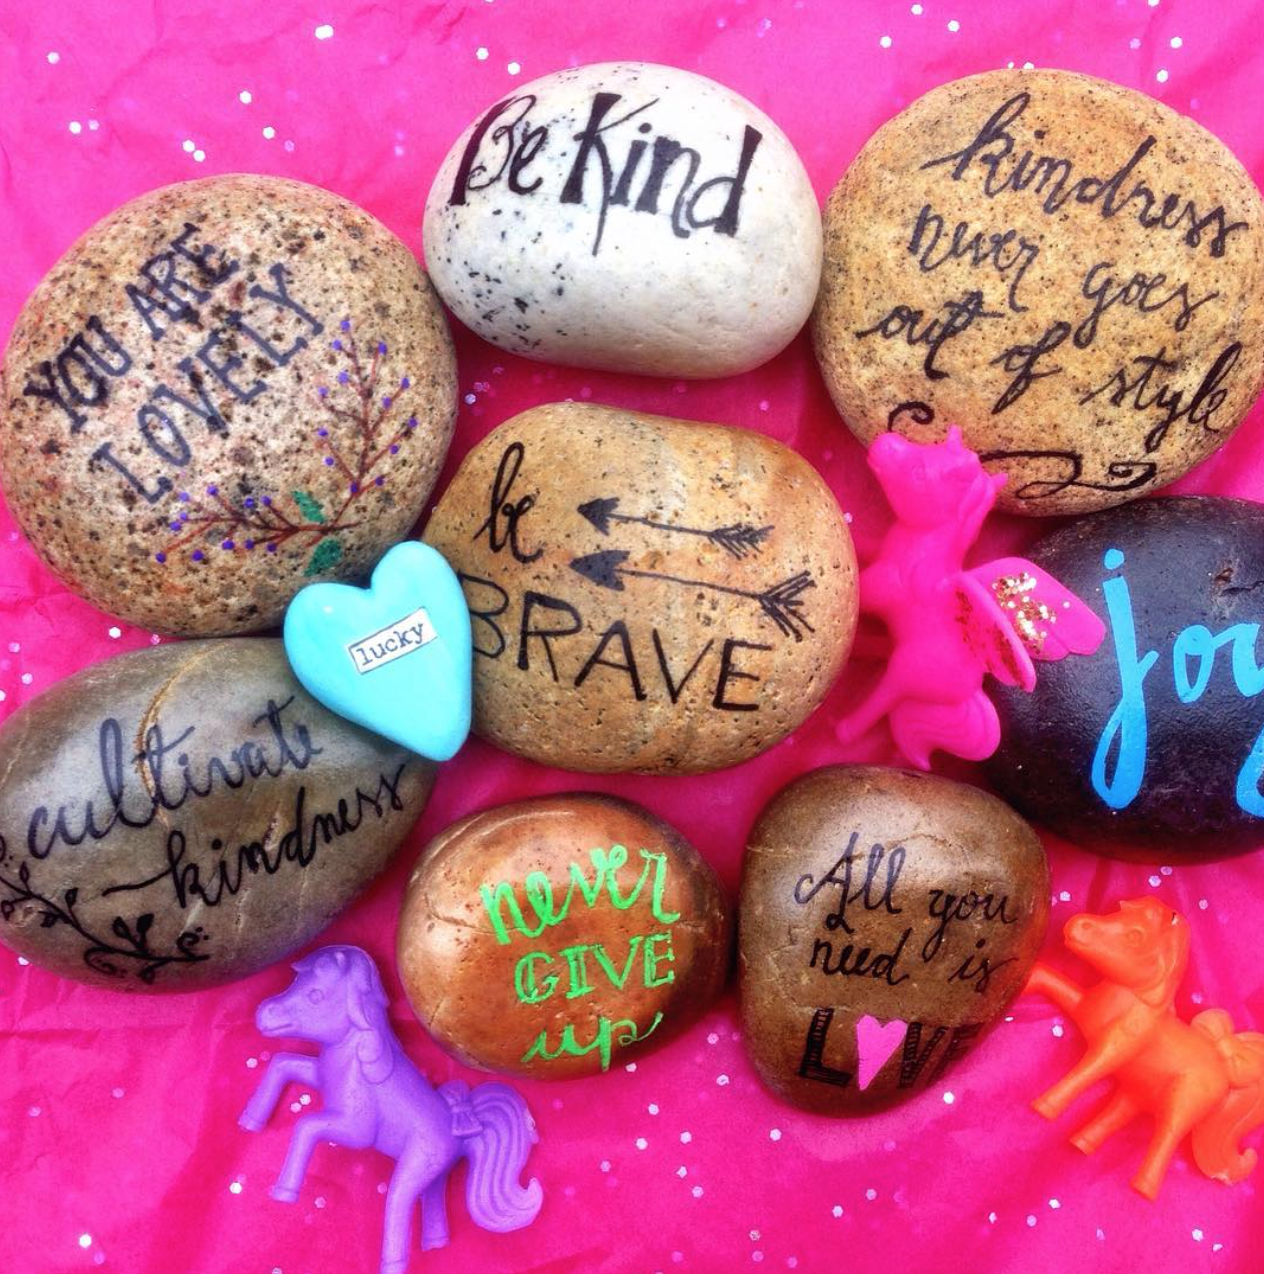 A Blog About Our Project Word Rocks We Share Rocks With Positive Words Write On Them All Around The World Rock Painting Supplies Rock Crafts Painted Rocks